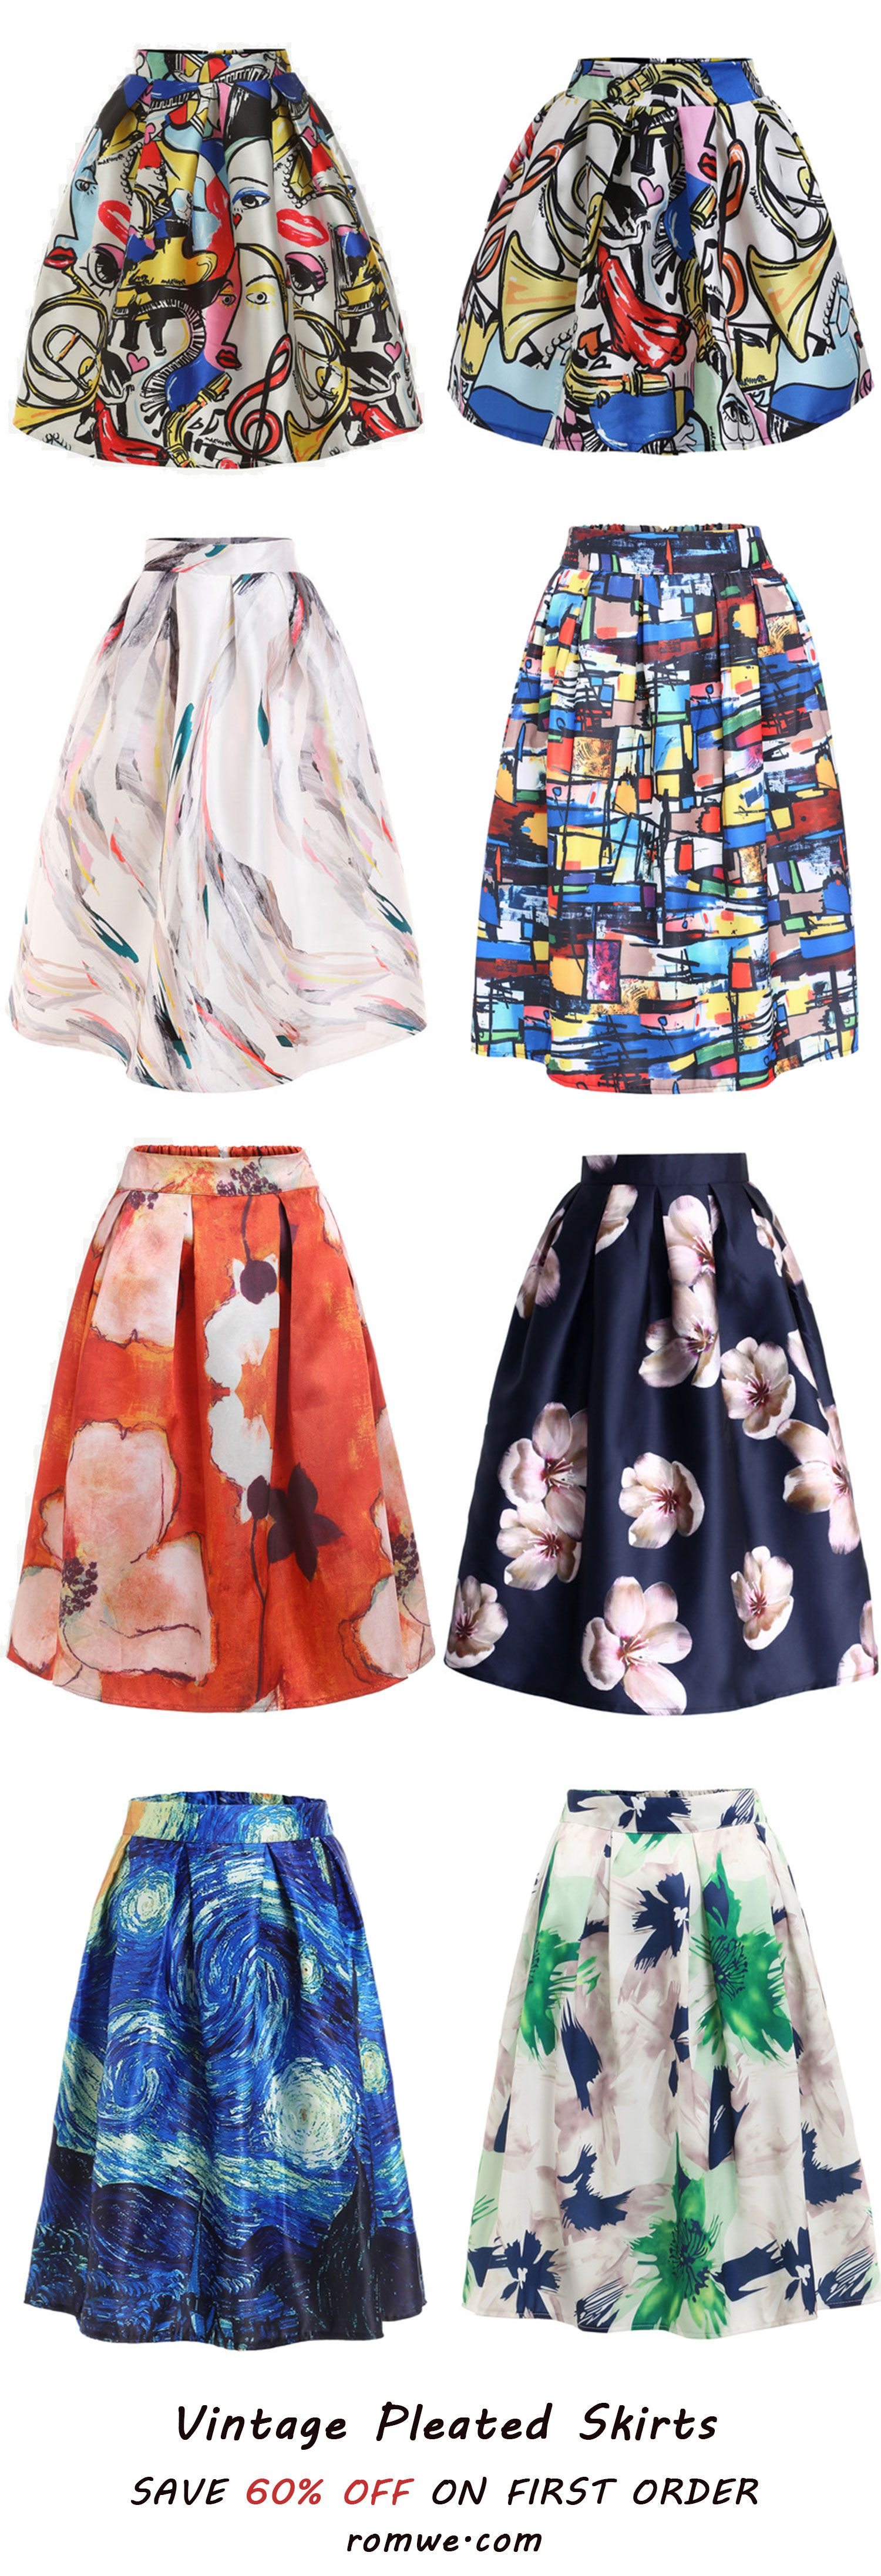 Cool Vintage Print Skirts from romwe.com